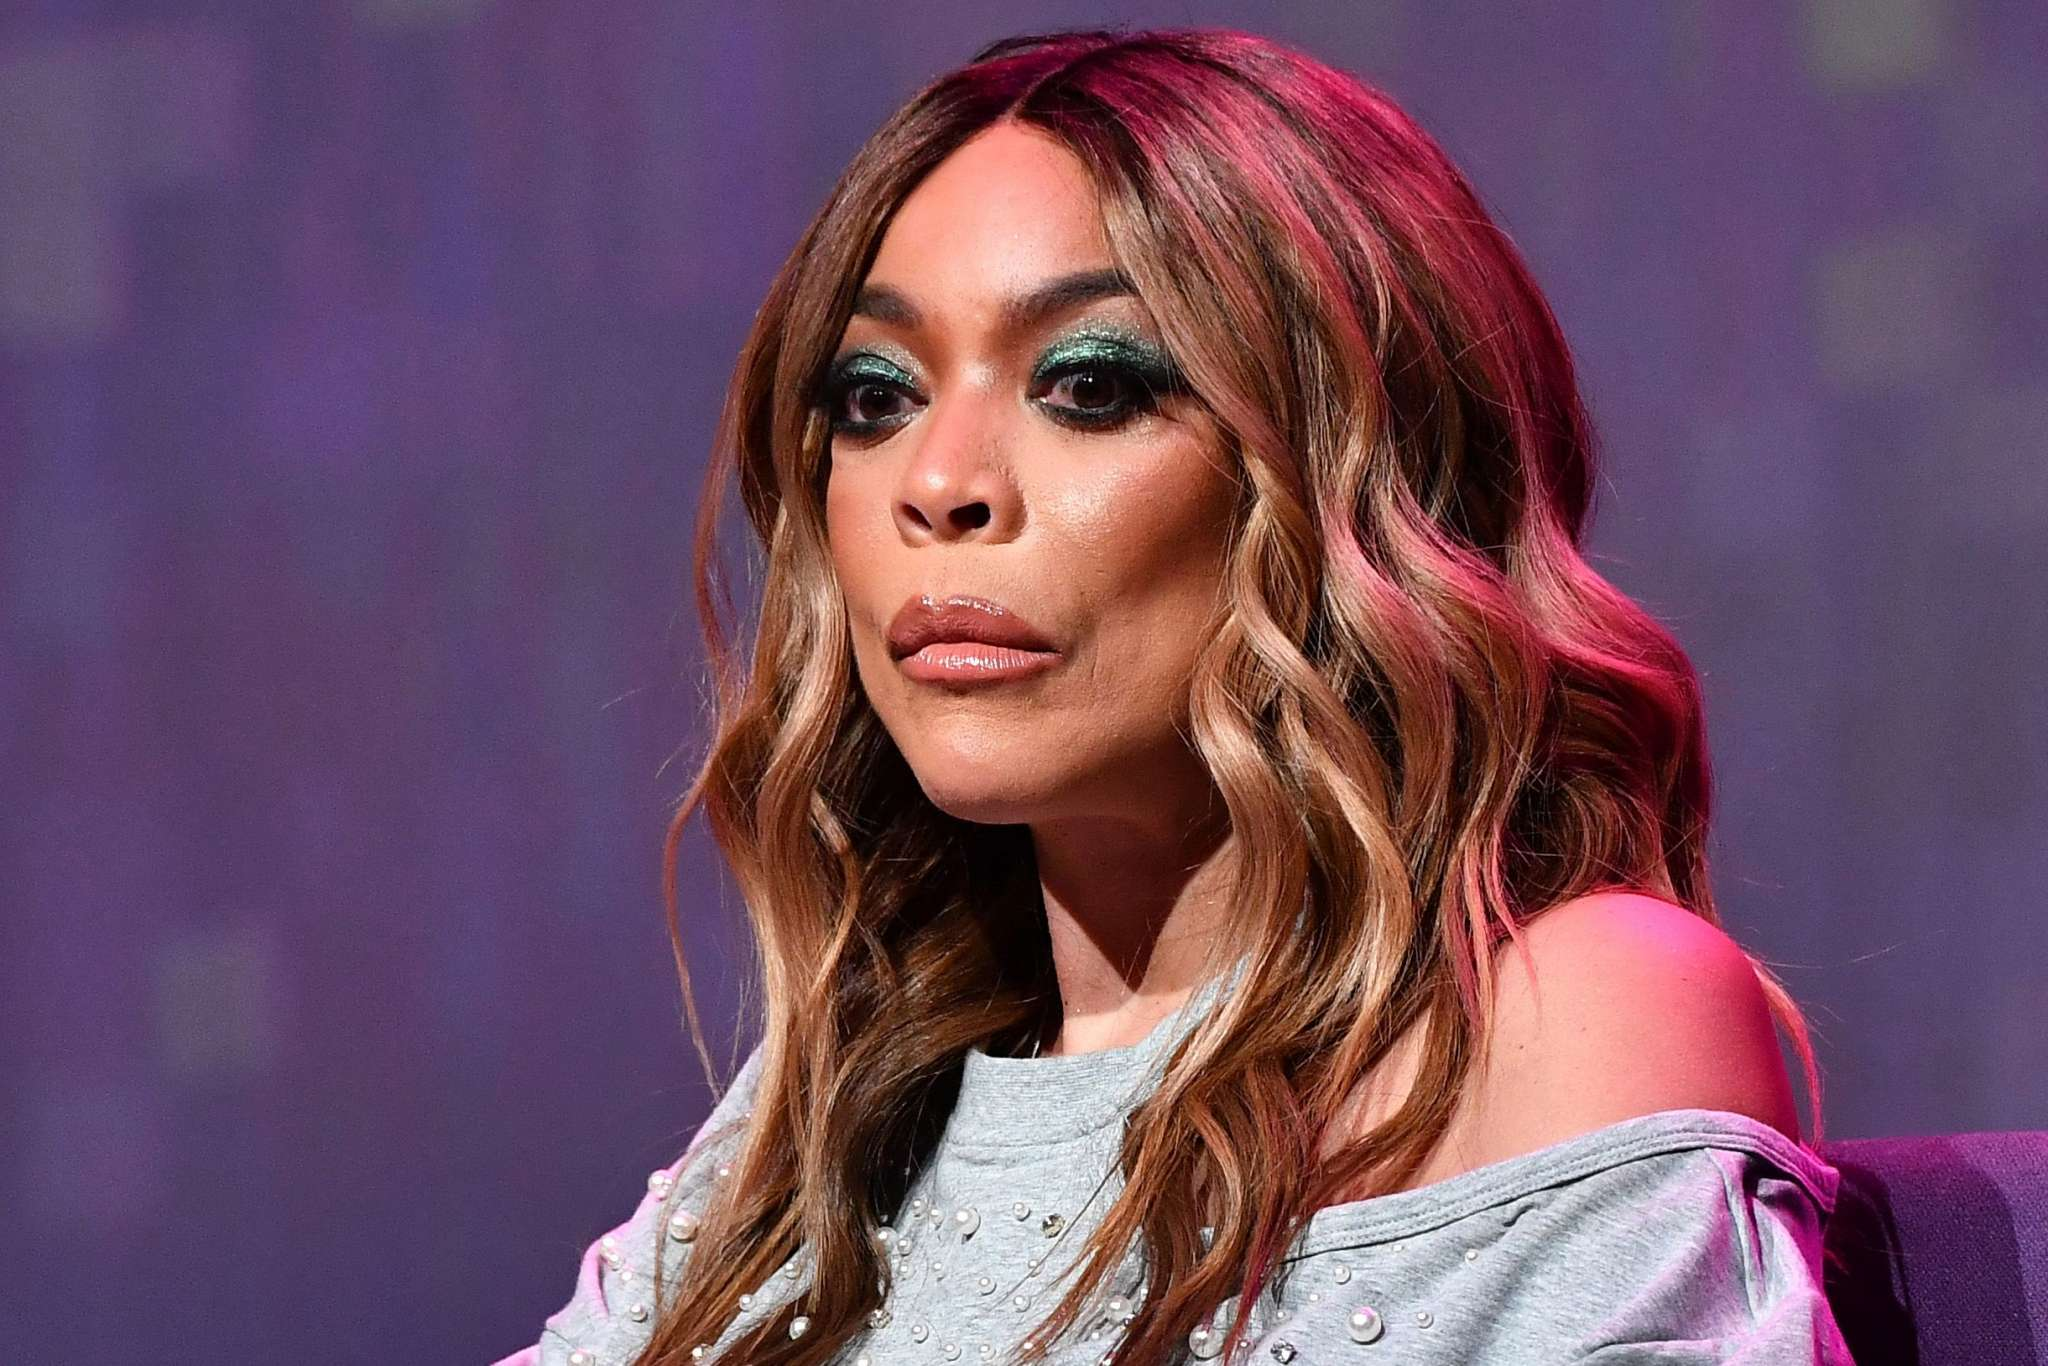 Wendy Williams Shuts Down An Excited Fan Who Wants To Hug Her - See The Strage Video Here